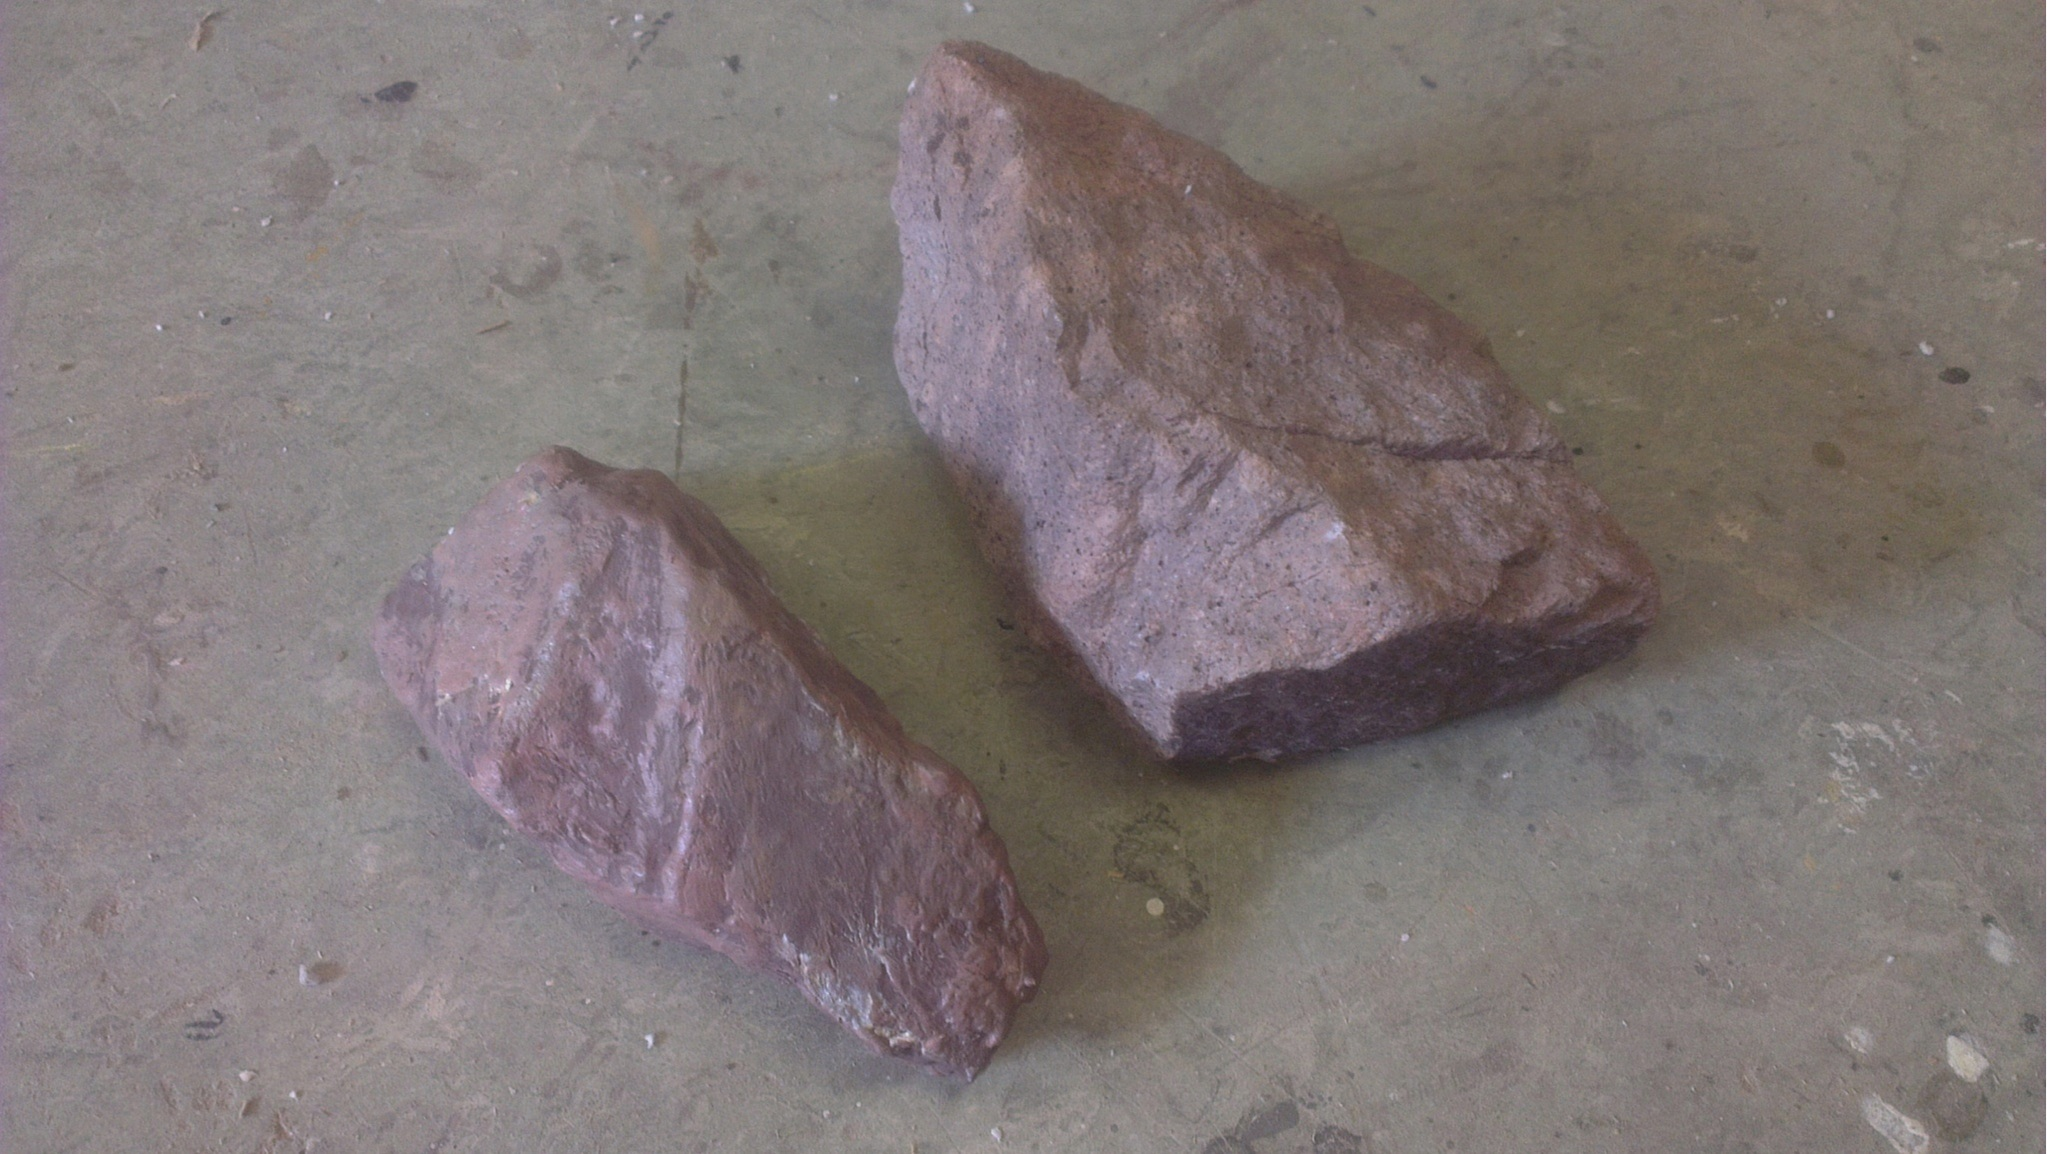 Faux stone test: one of the two is a real rock, the other one is a replica I made